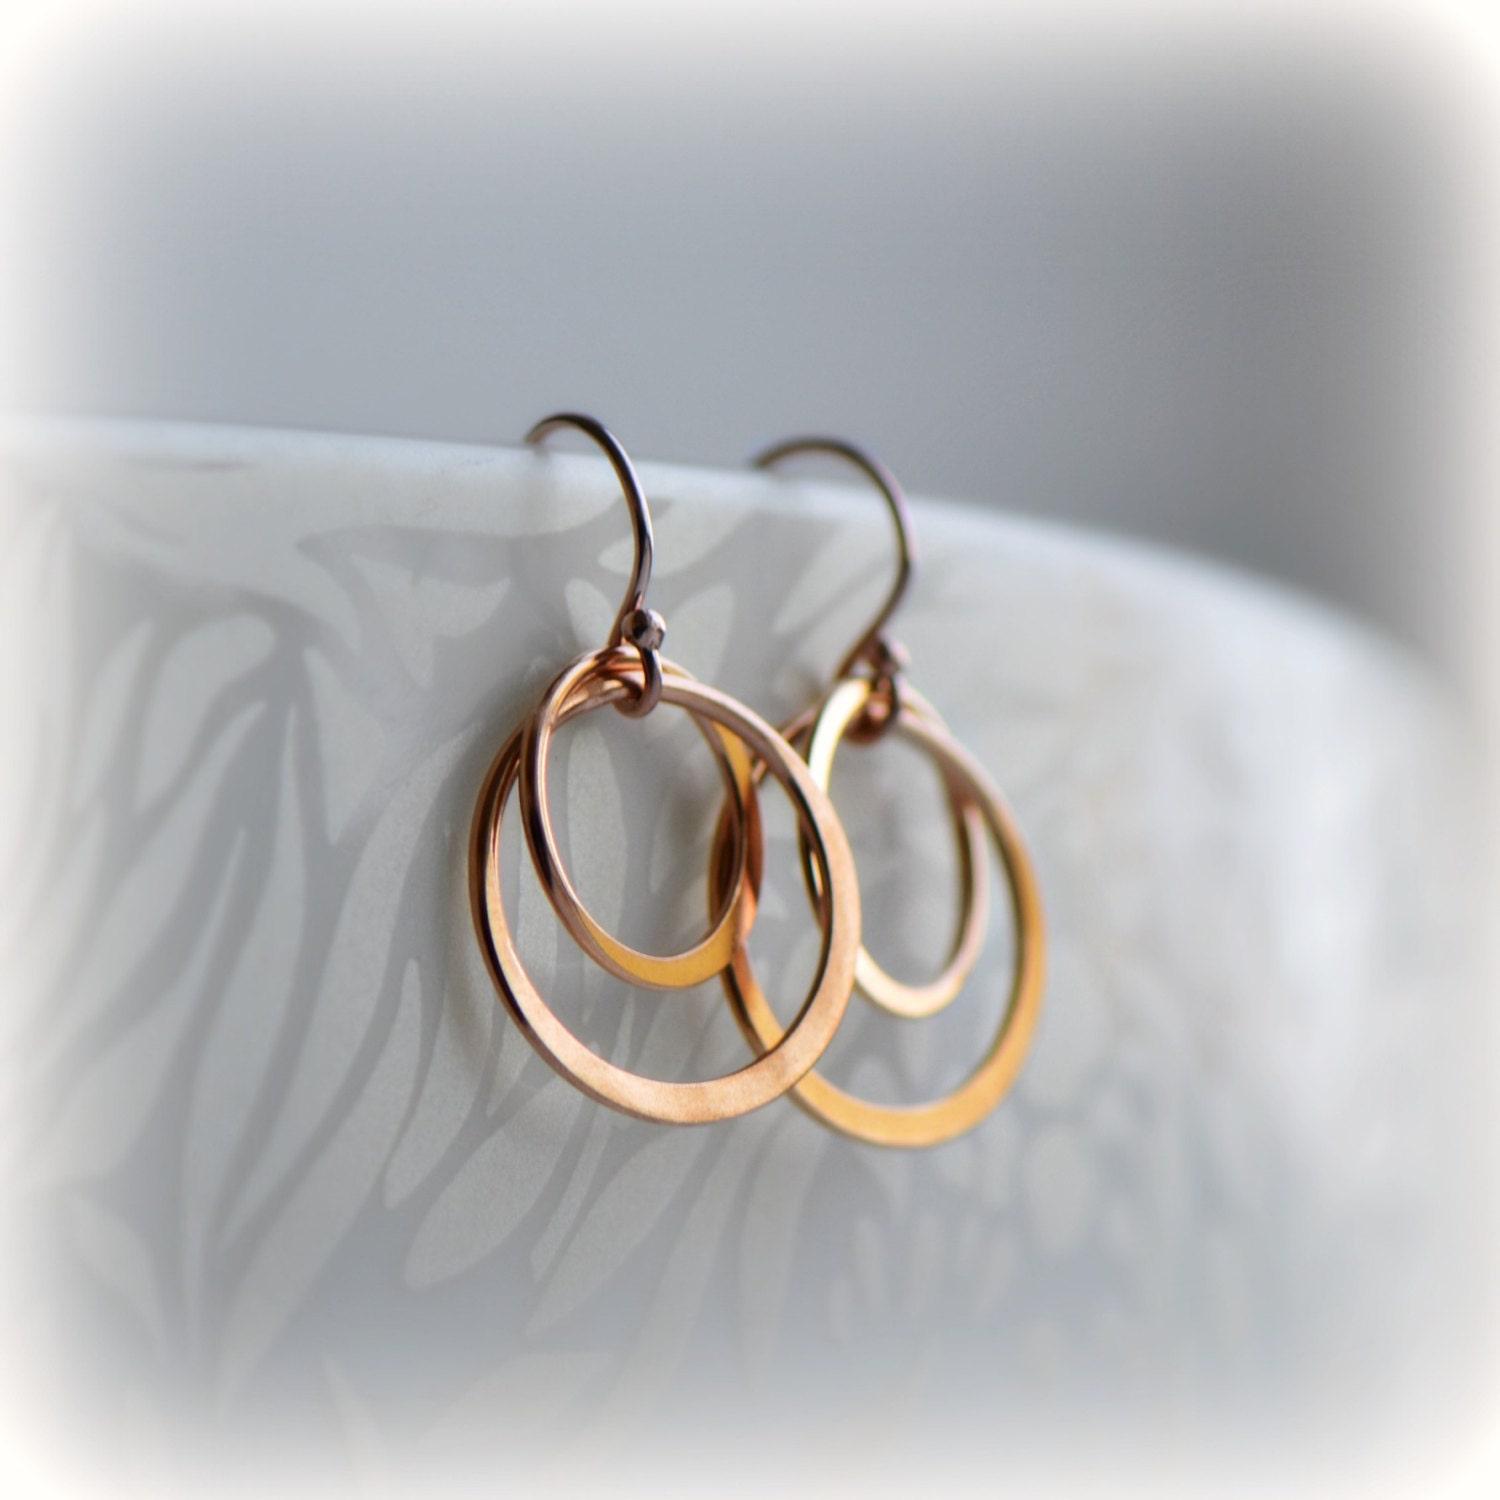 Double Hoop Earrings Rose Gold Hoop Earrings Pink Gold Circle Earrings Rose Gold Circle Earrings Gift for Her Bridesmaid Gift Blissaria